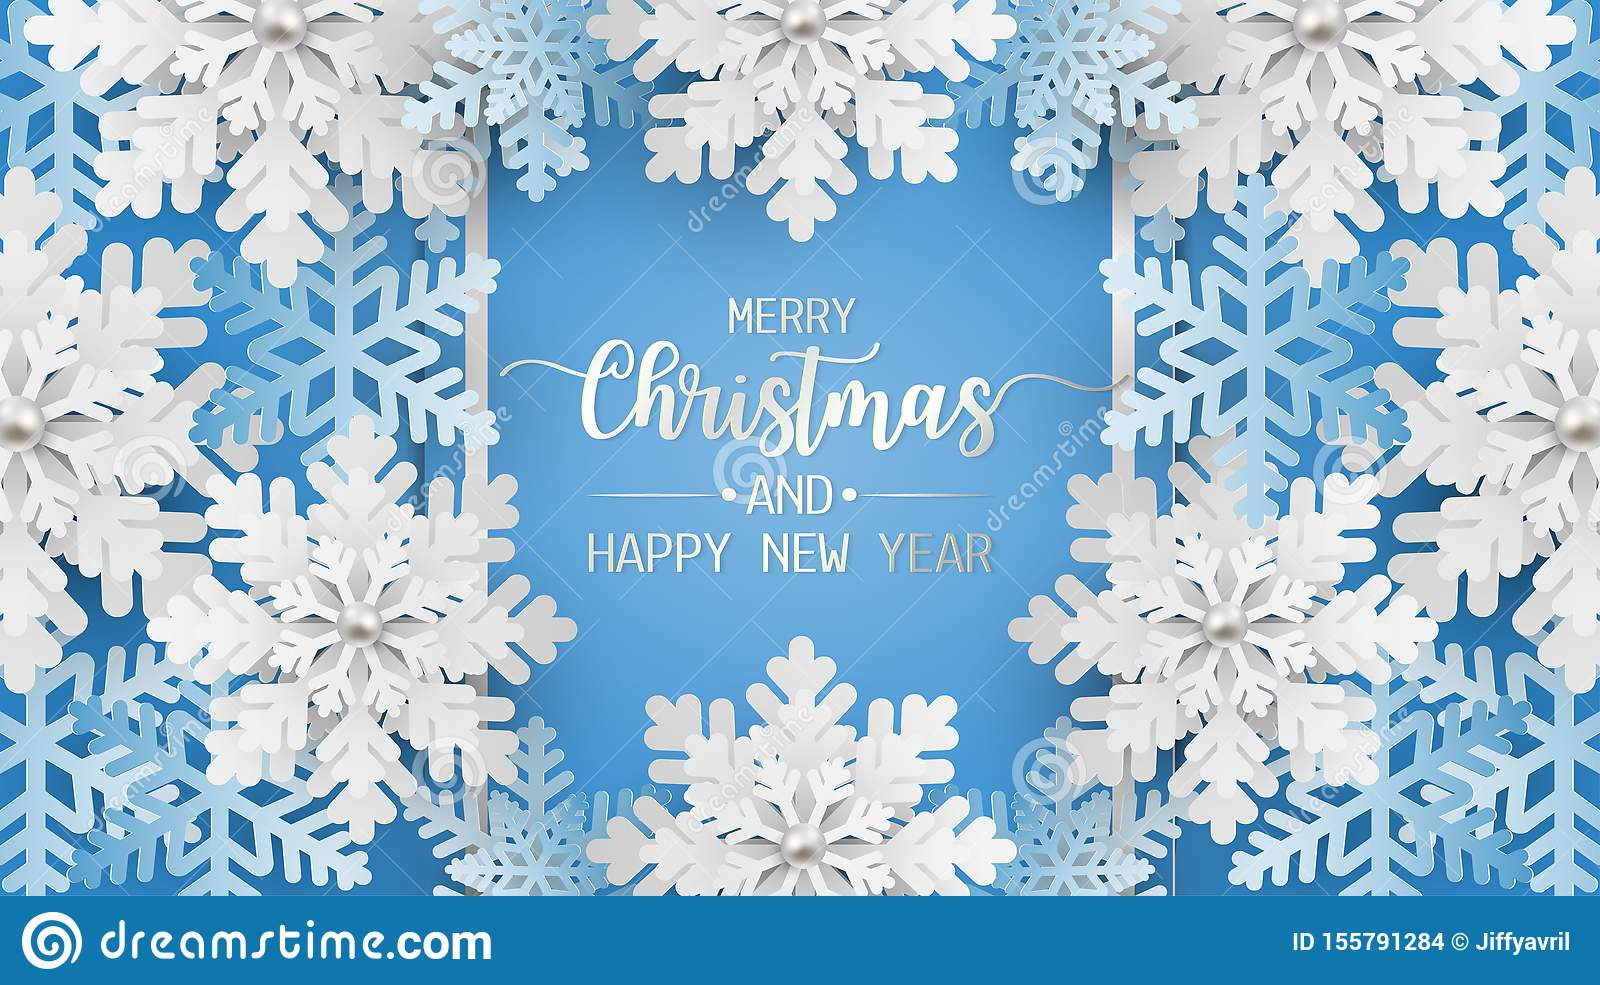 Merry christmas and happy new year greeting card, postcard with snowflake on blue background